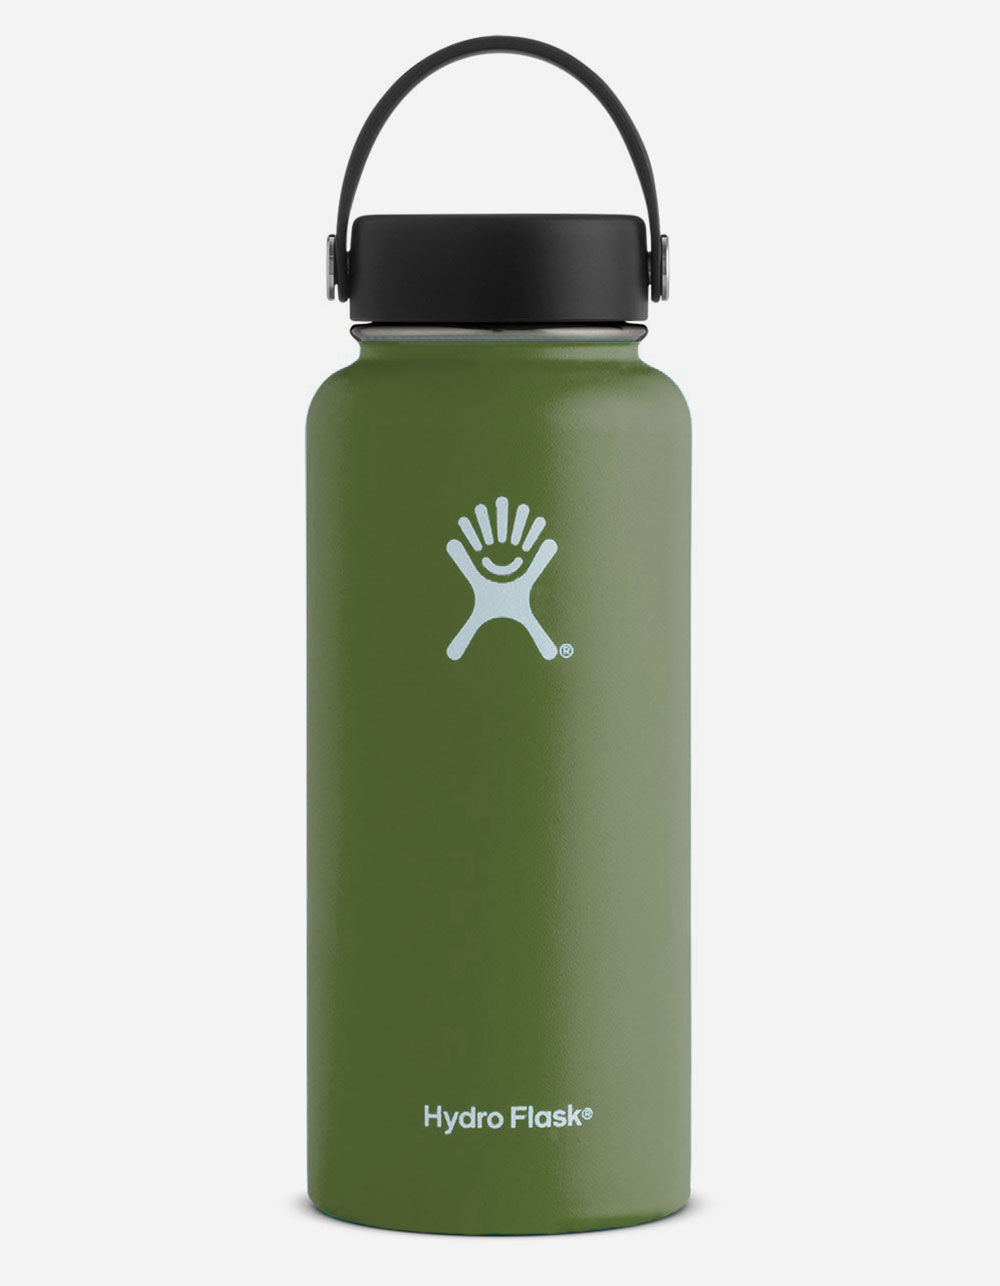 HYDRO FLASK Olive 32oz Wide Mouth Water Bottle